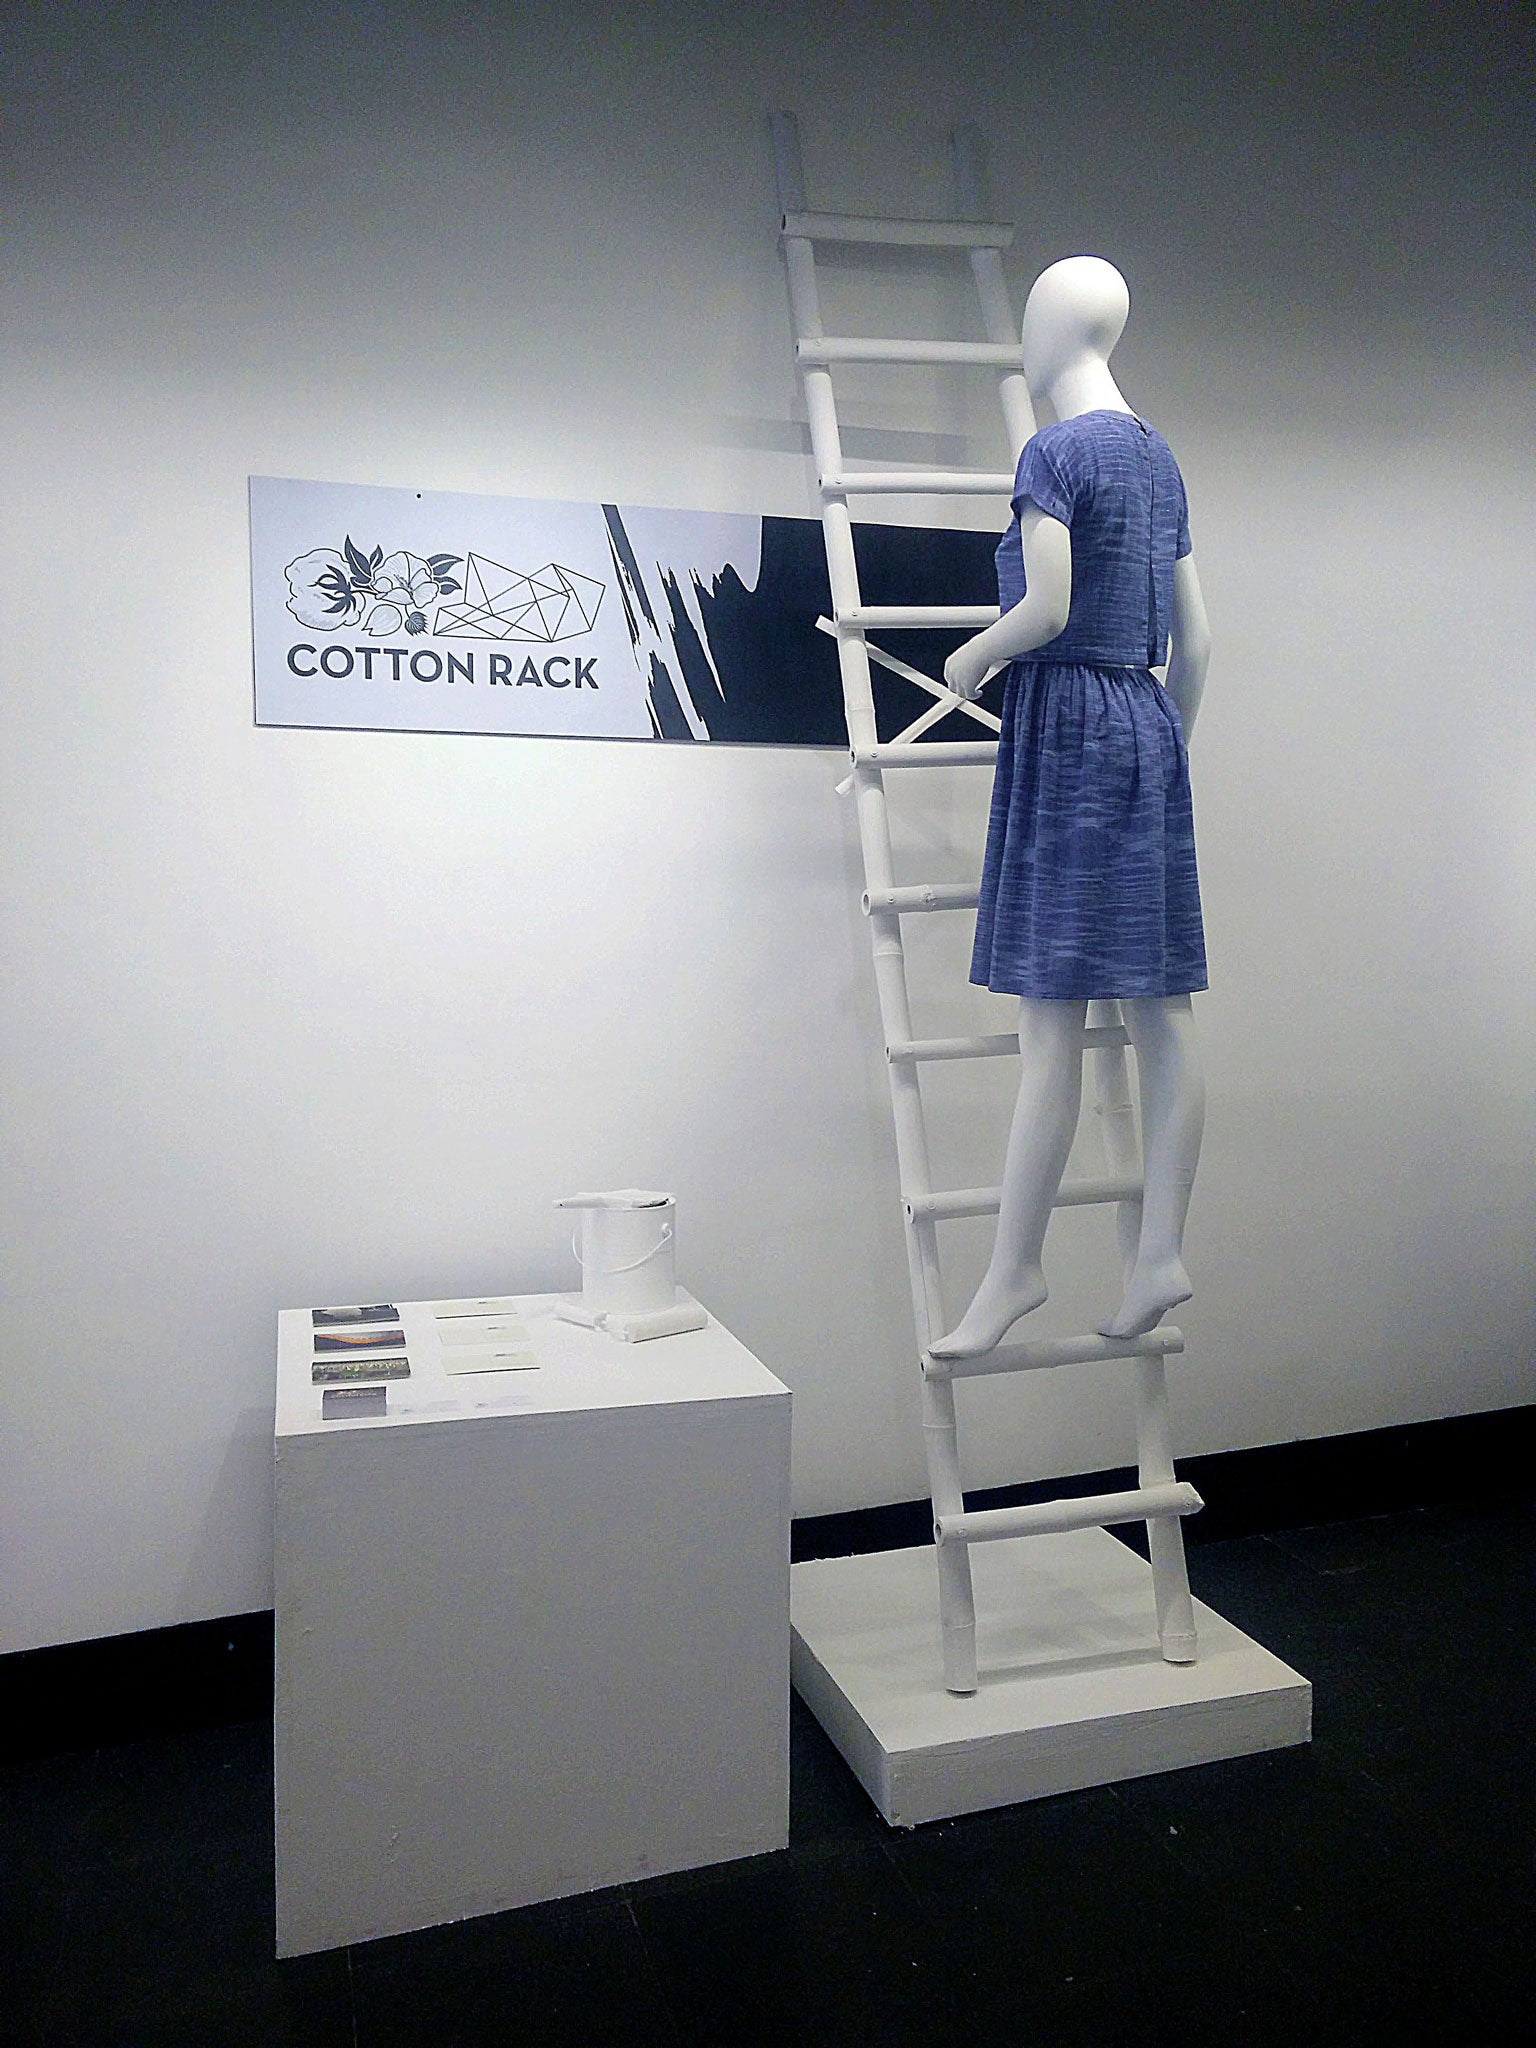 An installed made for 20 Under 35, Delhi where a white female mannequin dressed in blue Cotton Rack Khadi dress is climbing white wooden stairs to paint the Cotton Rack banner